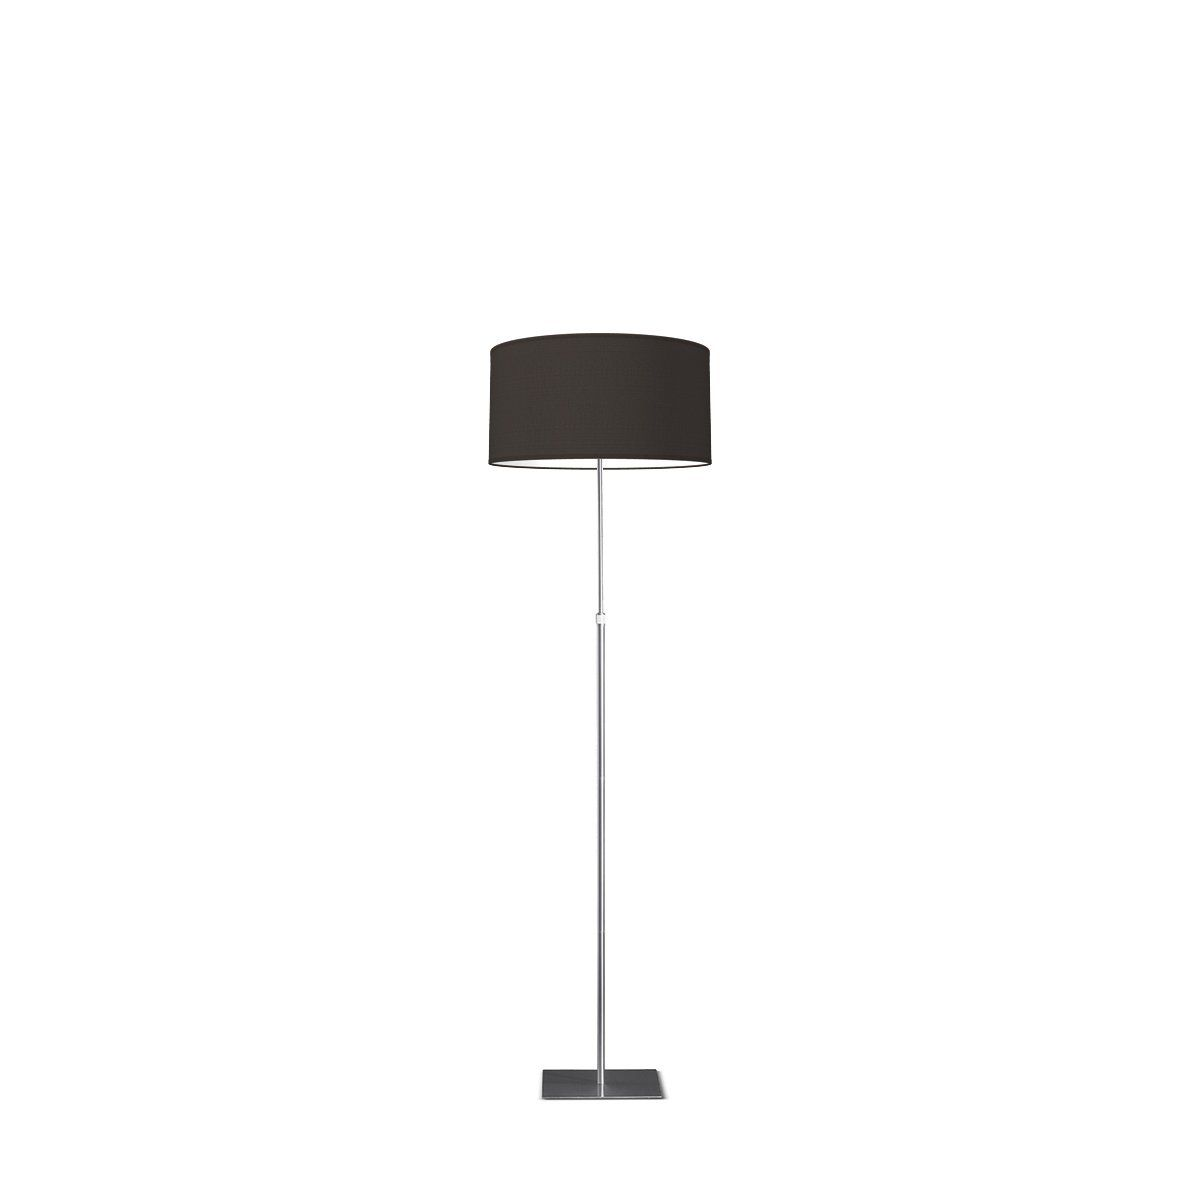 HOME SWEET HOME vloerlamp bobo bling Ø 45 cm - Night black